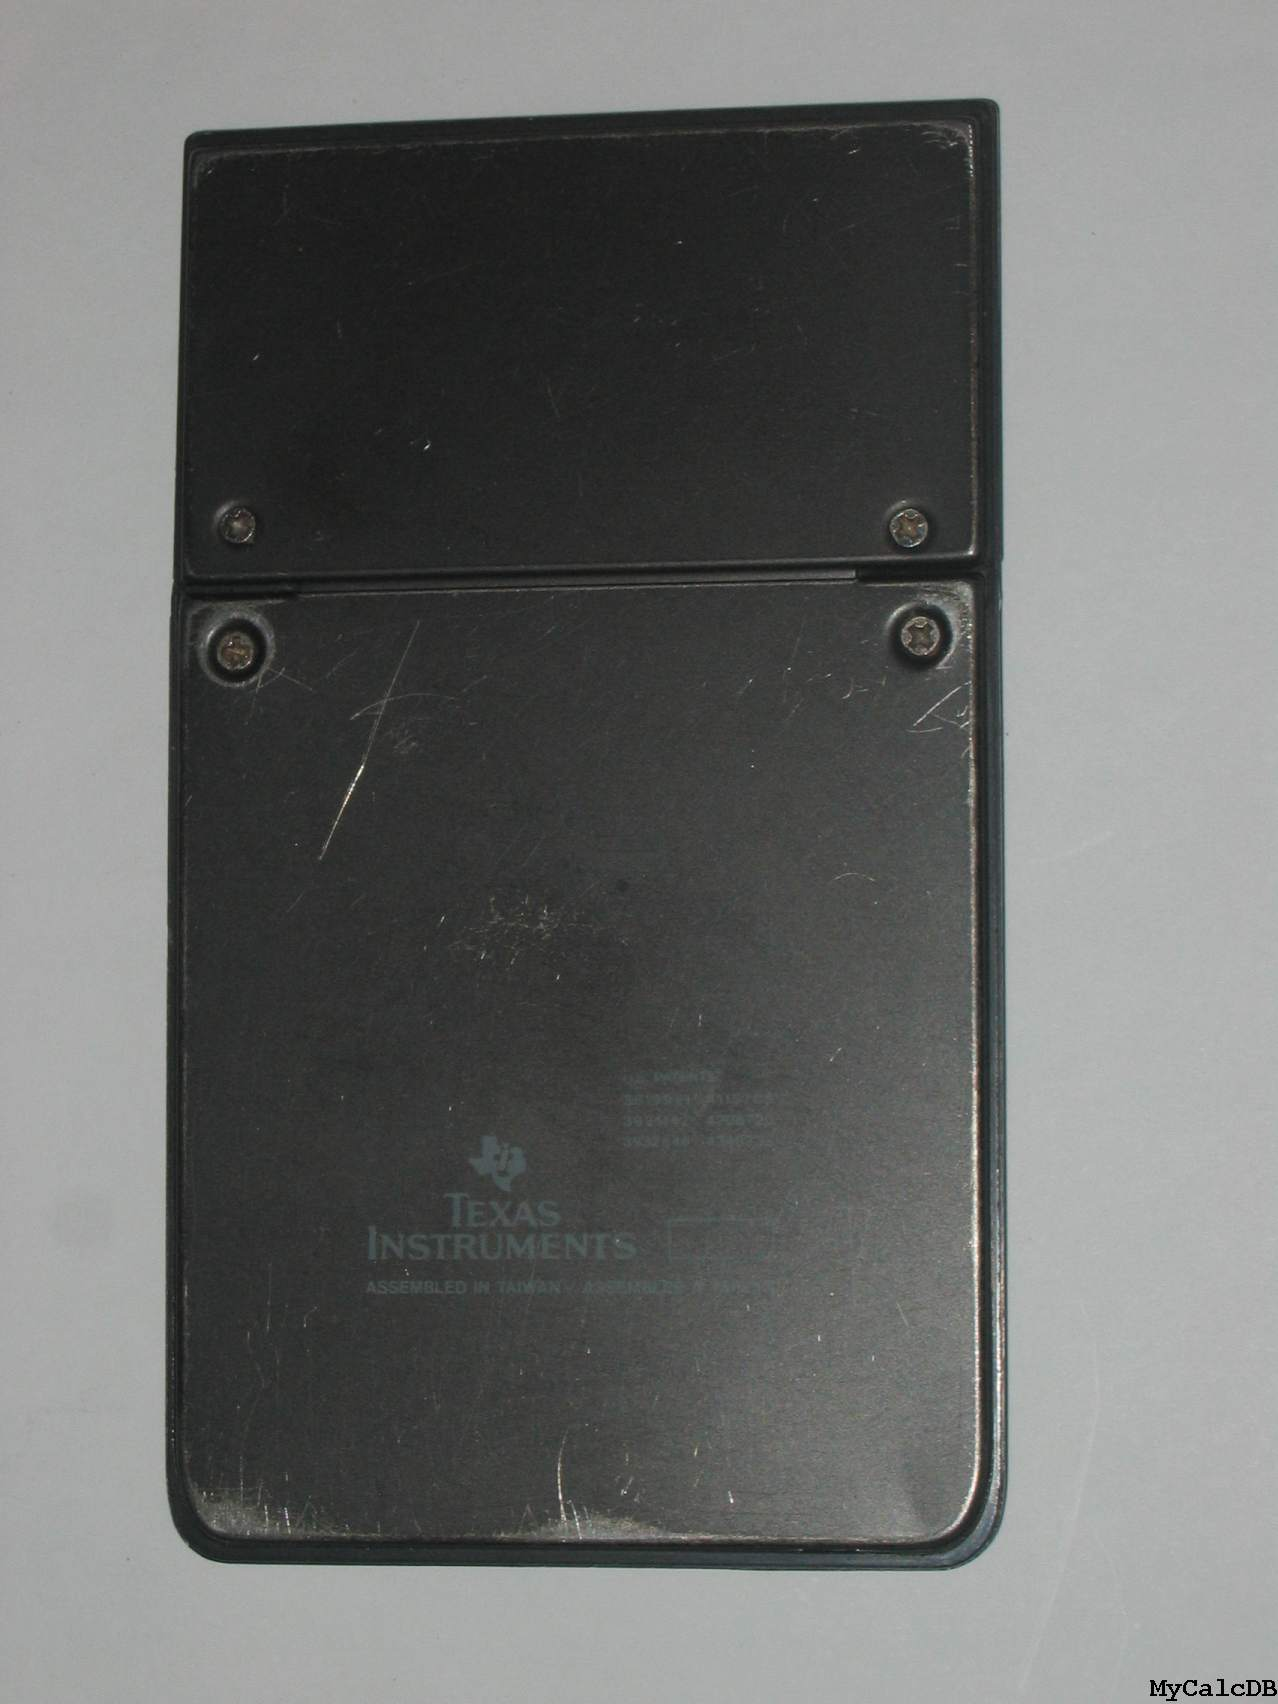 Texas Instruments TI-606